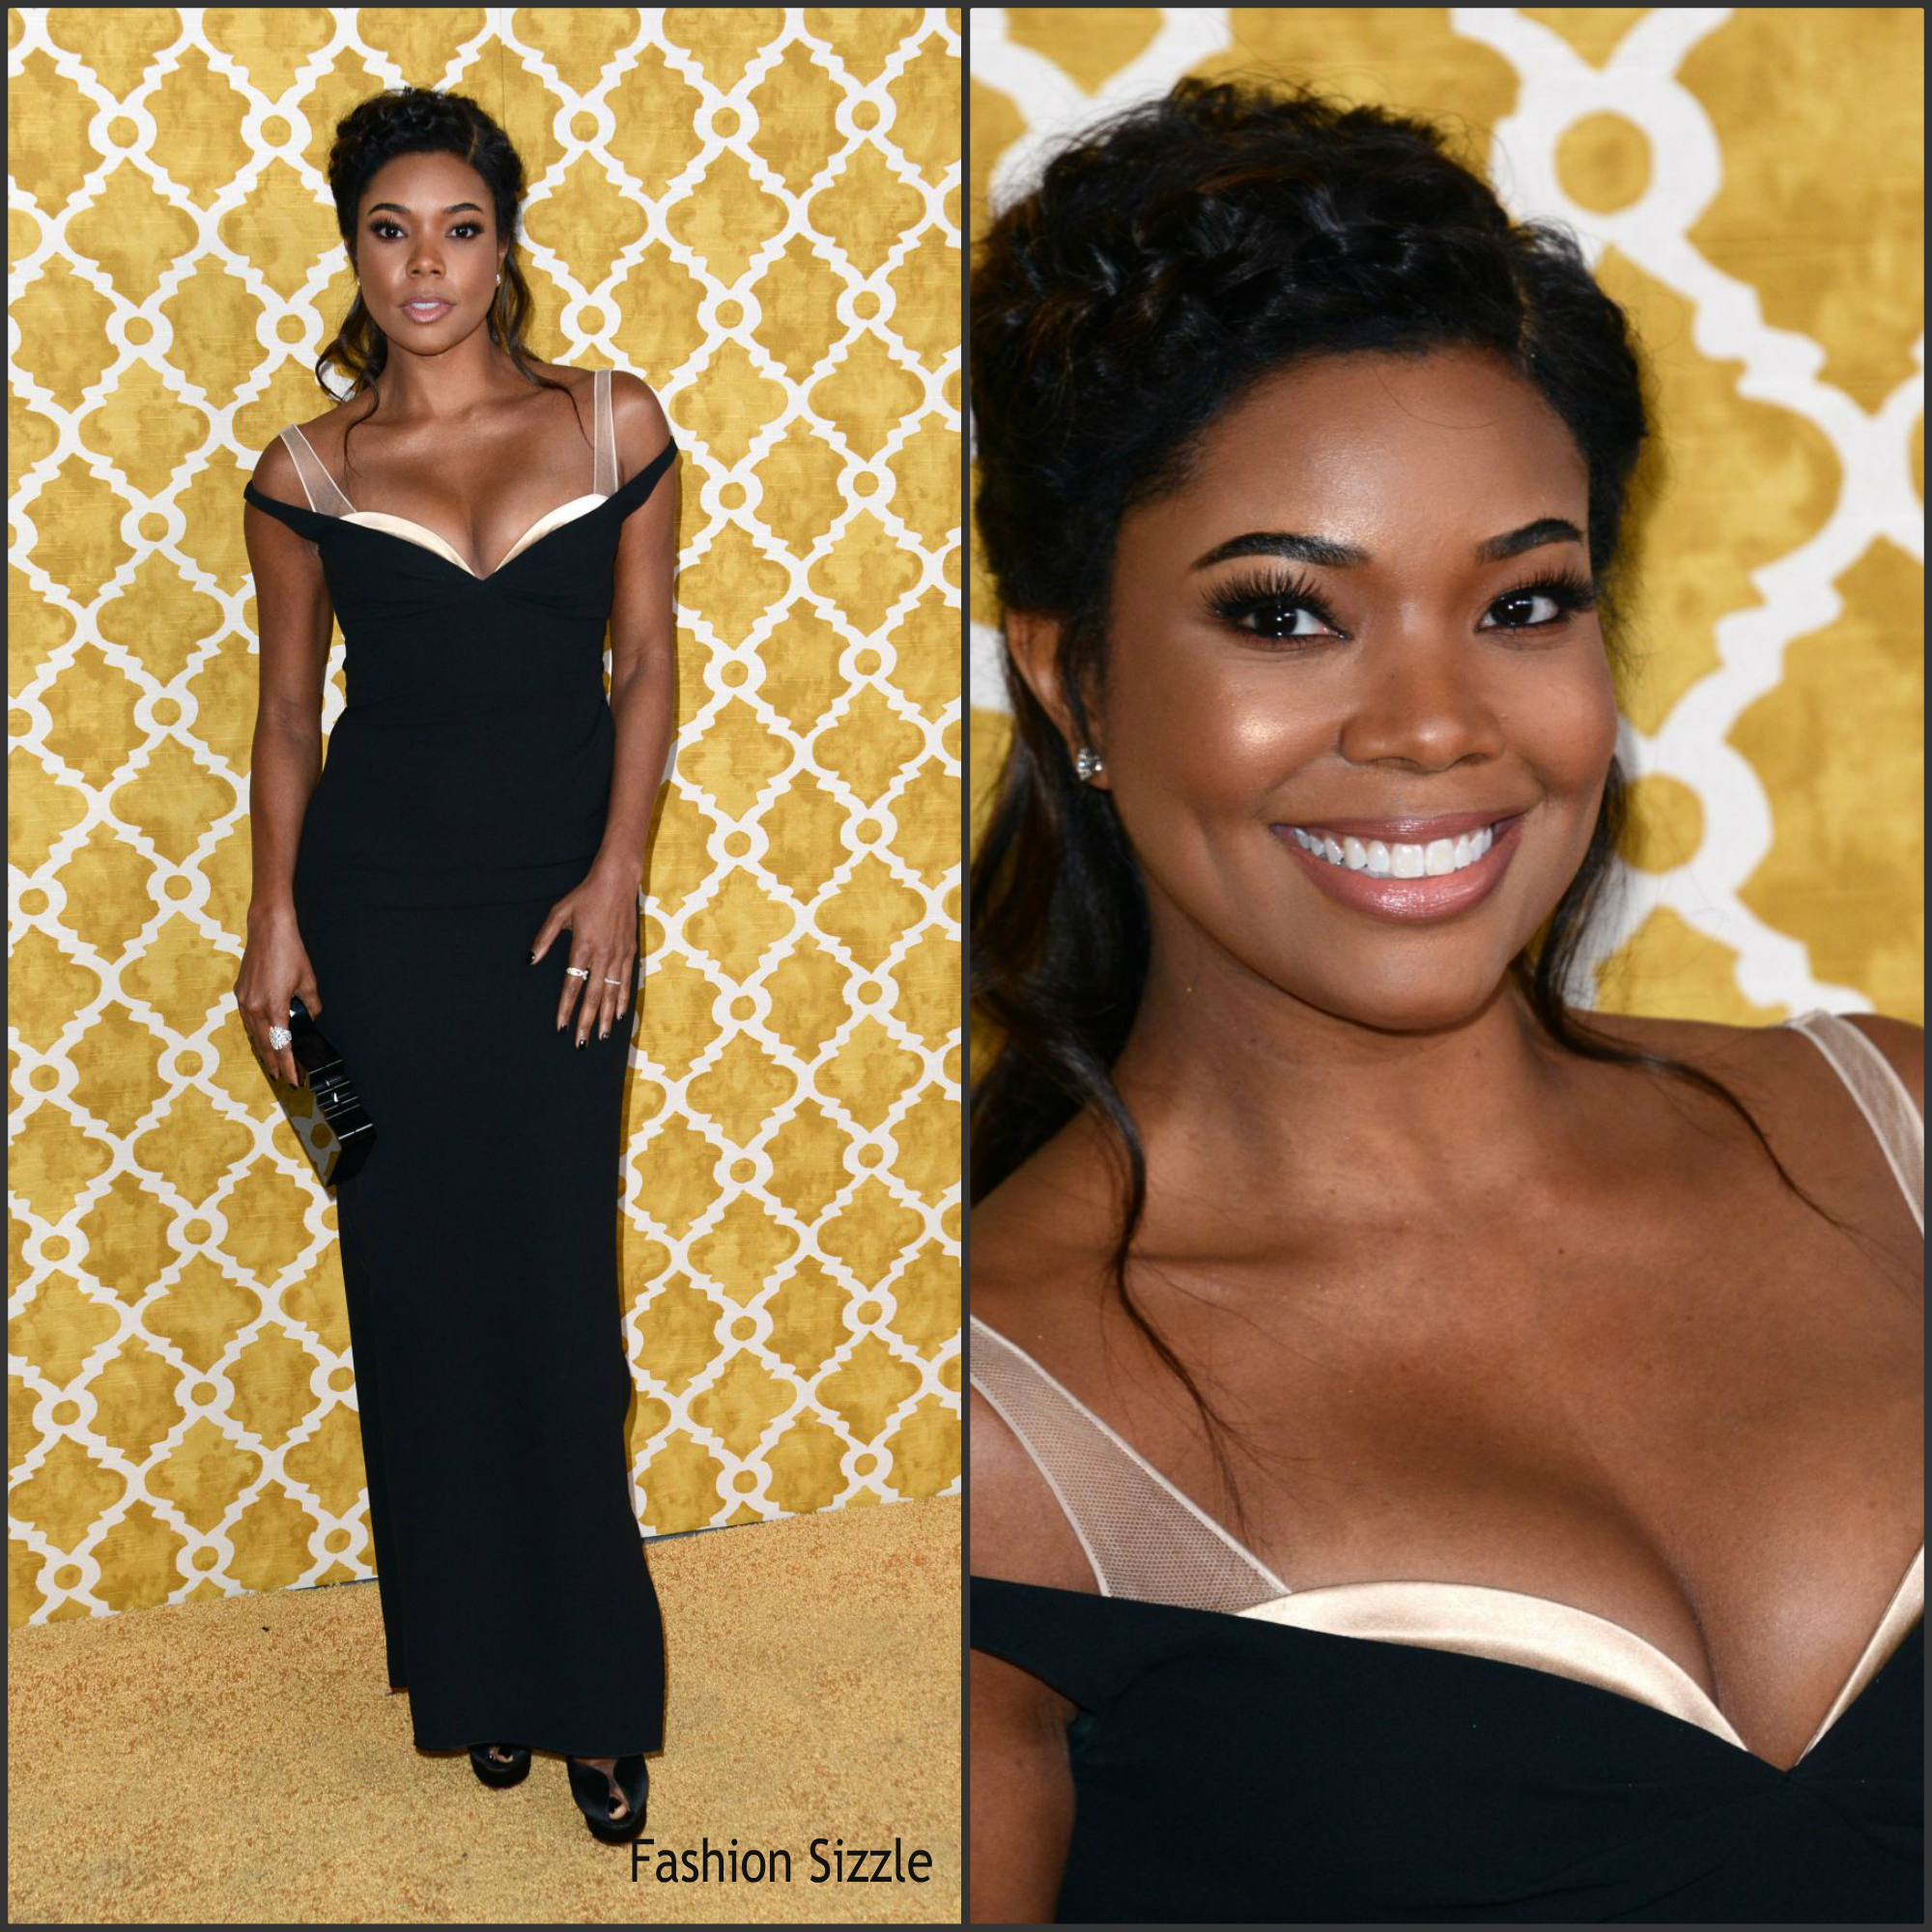 gabrielle-union-in-marc-jacobs-at-the-confirmation-la-premiere (1)